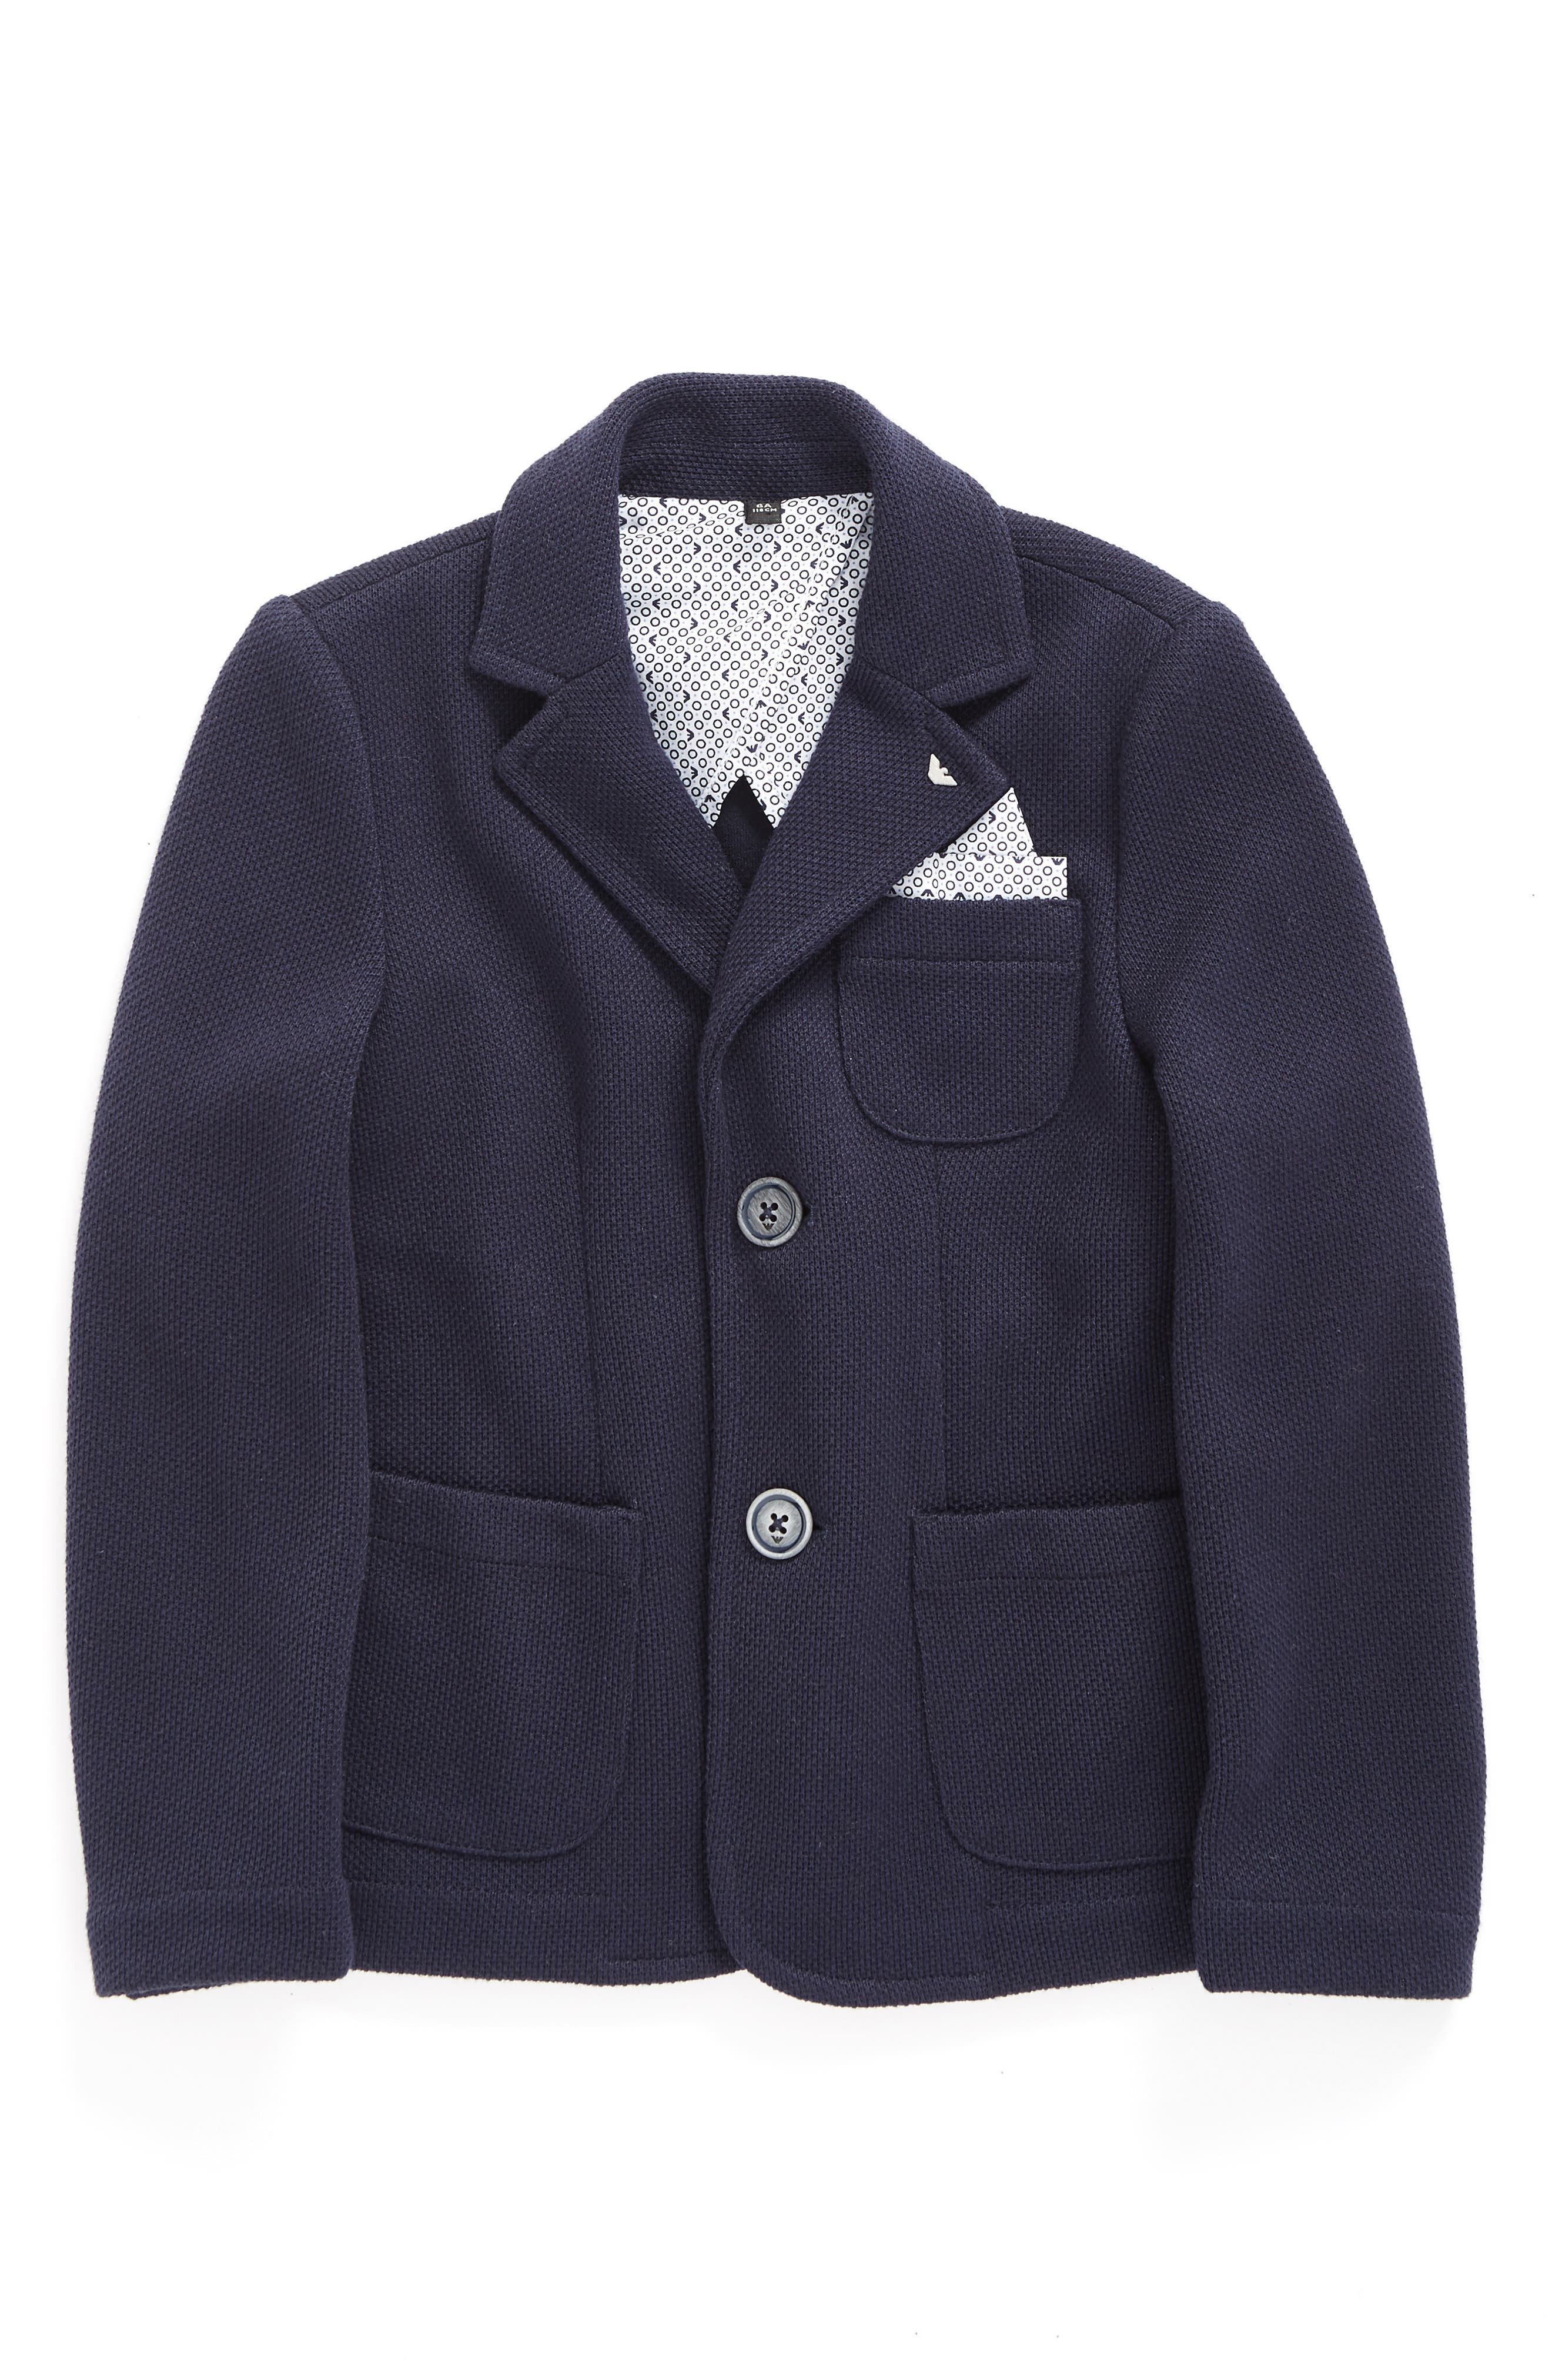 Knit Blazer with Pocket Square,                             Main thumbnail 1, color,                             Navy